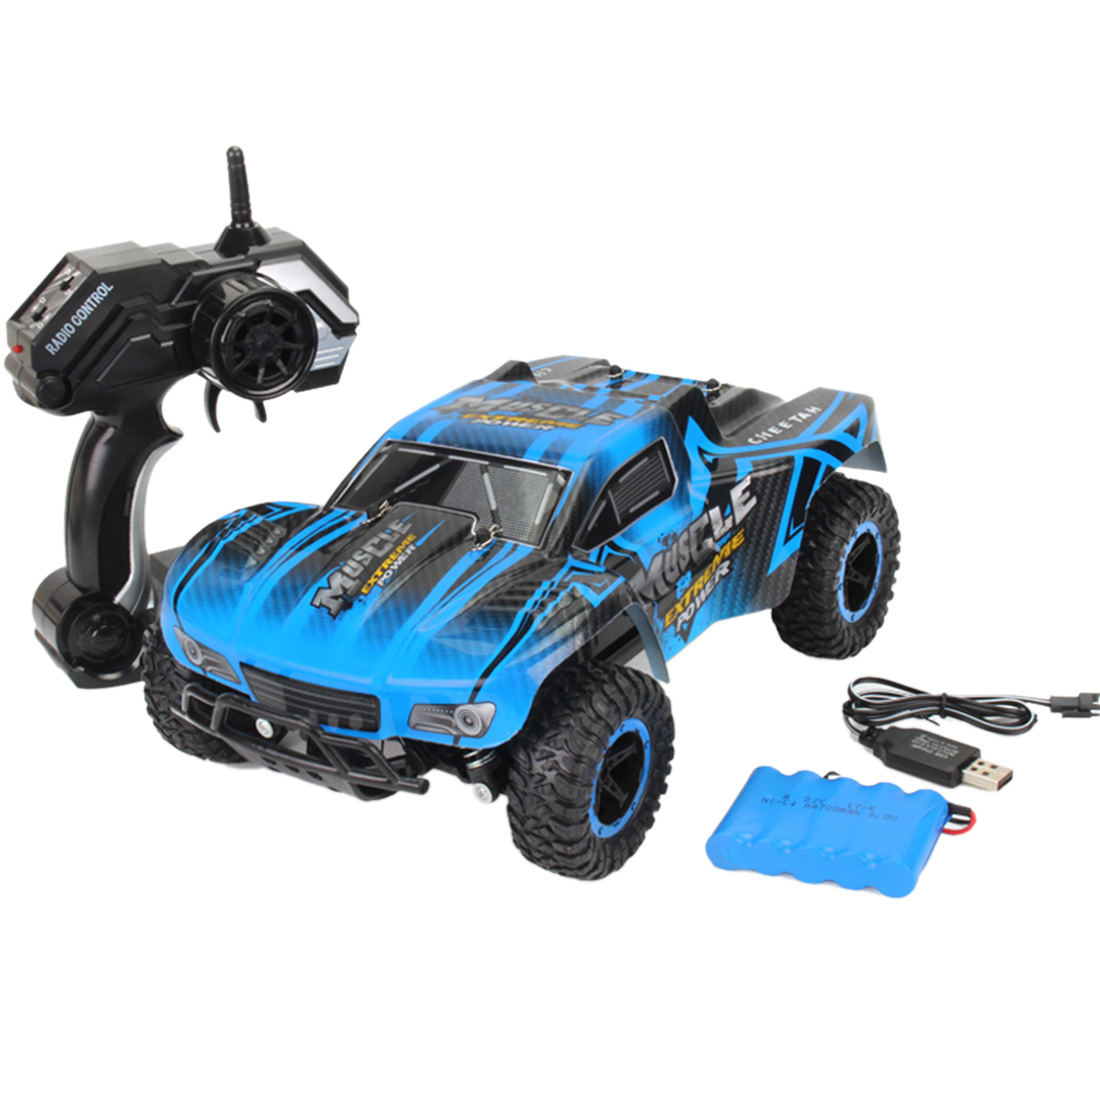 1:16 2.4G 25KM/H High-speed Off-road Vehicle RC Drift Car Racing Car Sport Car Toys for Children Outdoor Playing Gift 20191:16 2.4G 25KM/H High-speed Off-road Vehicle RC Drift Car Racing Car Sport Car Toys for Children Outdoor Playing Gift 2019